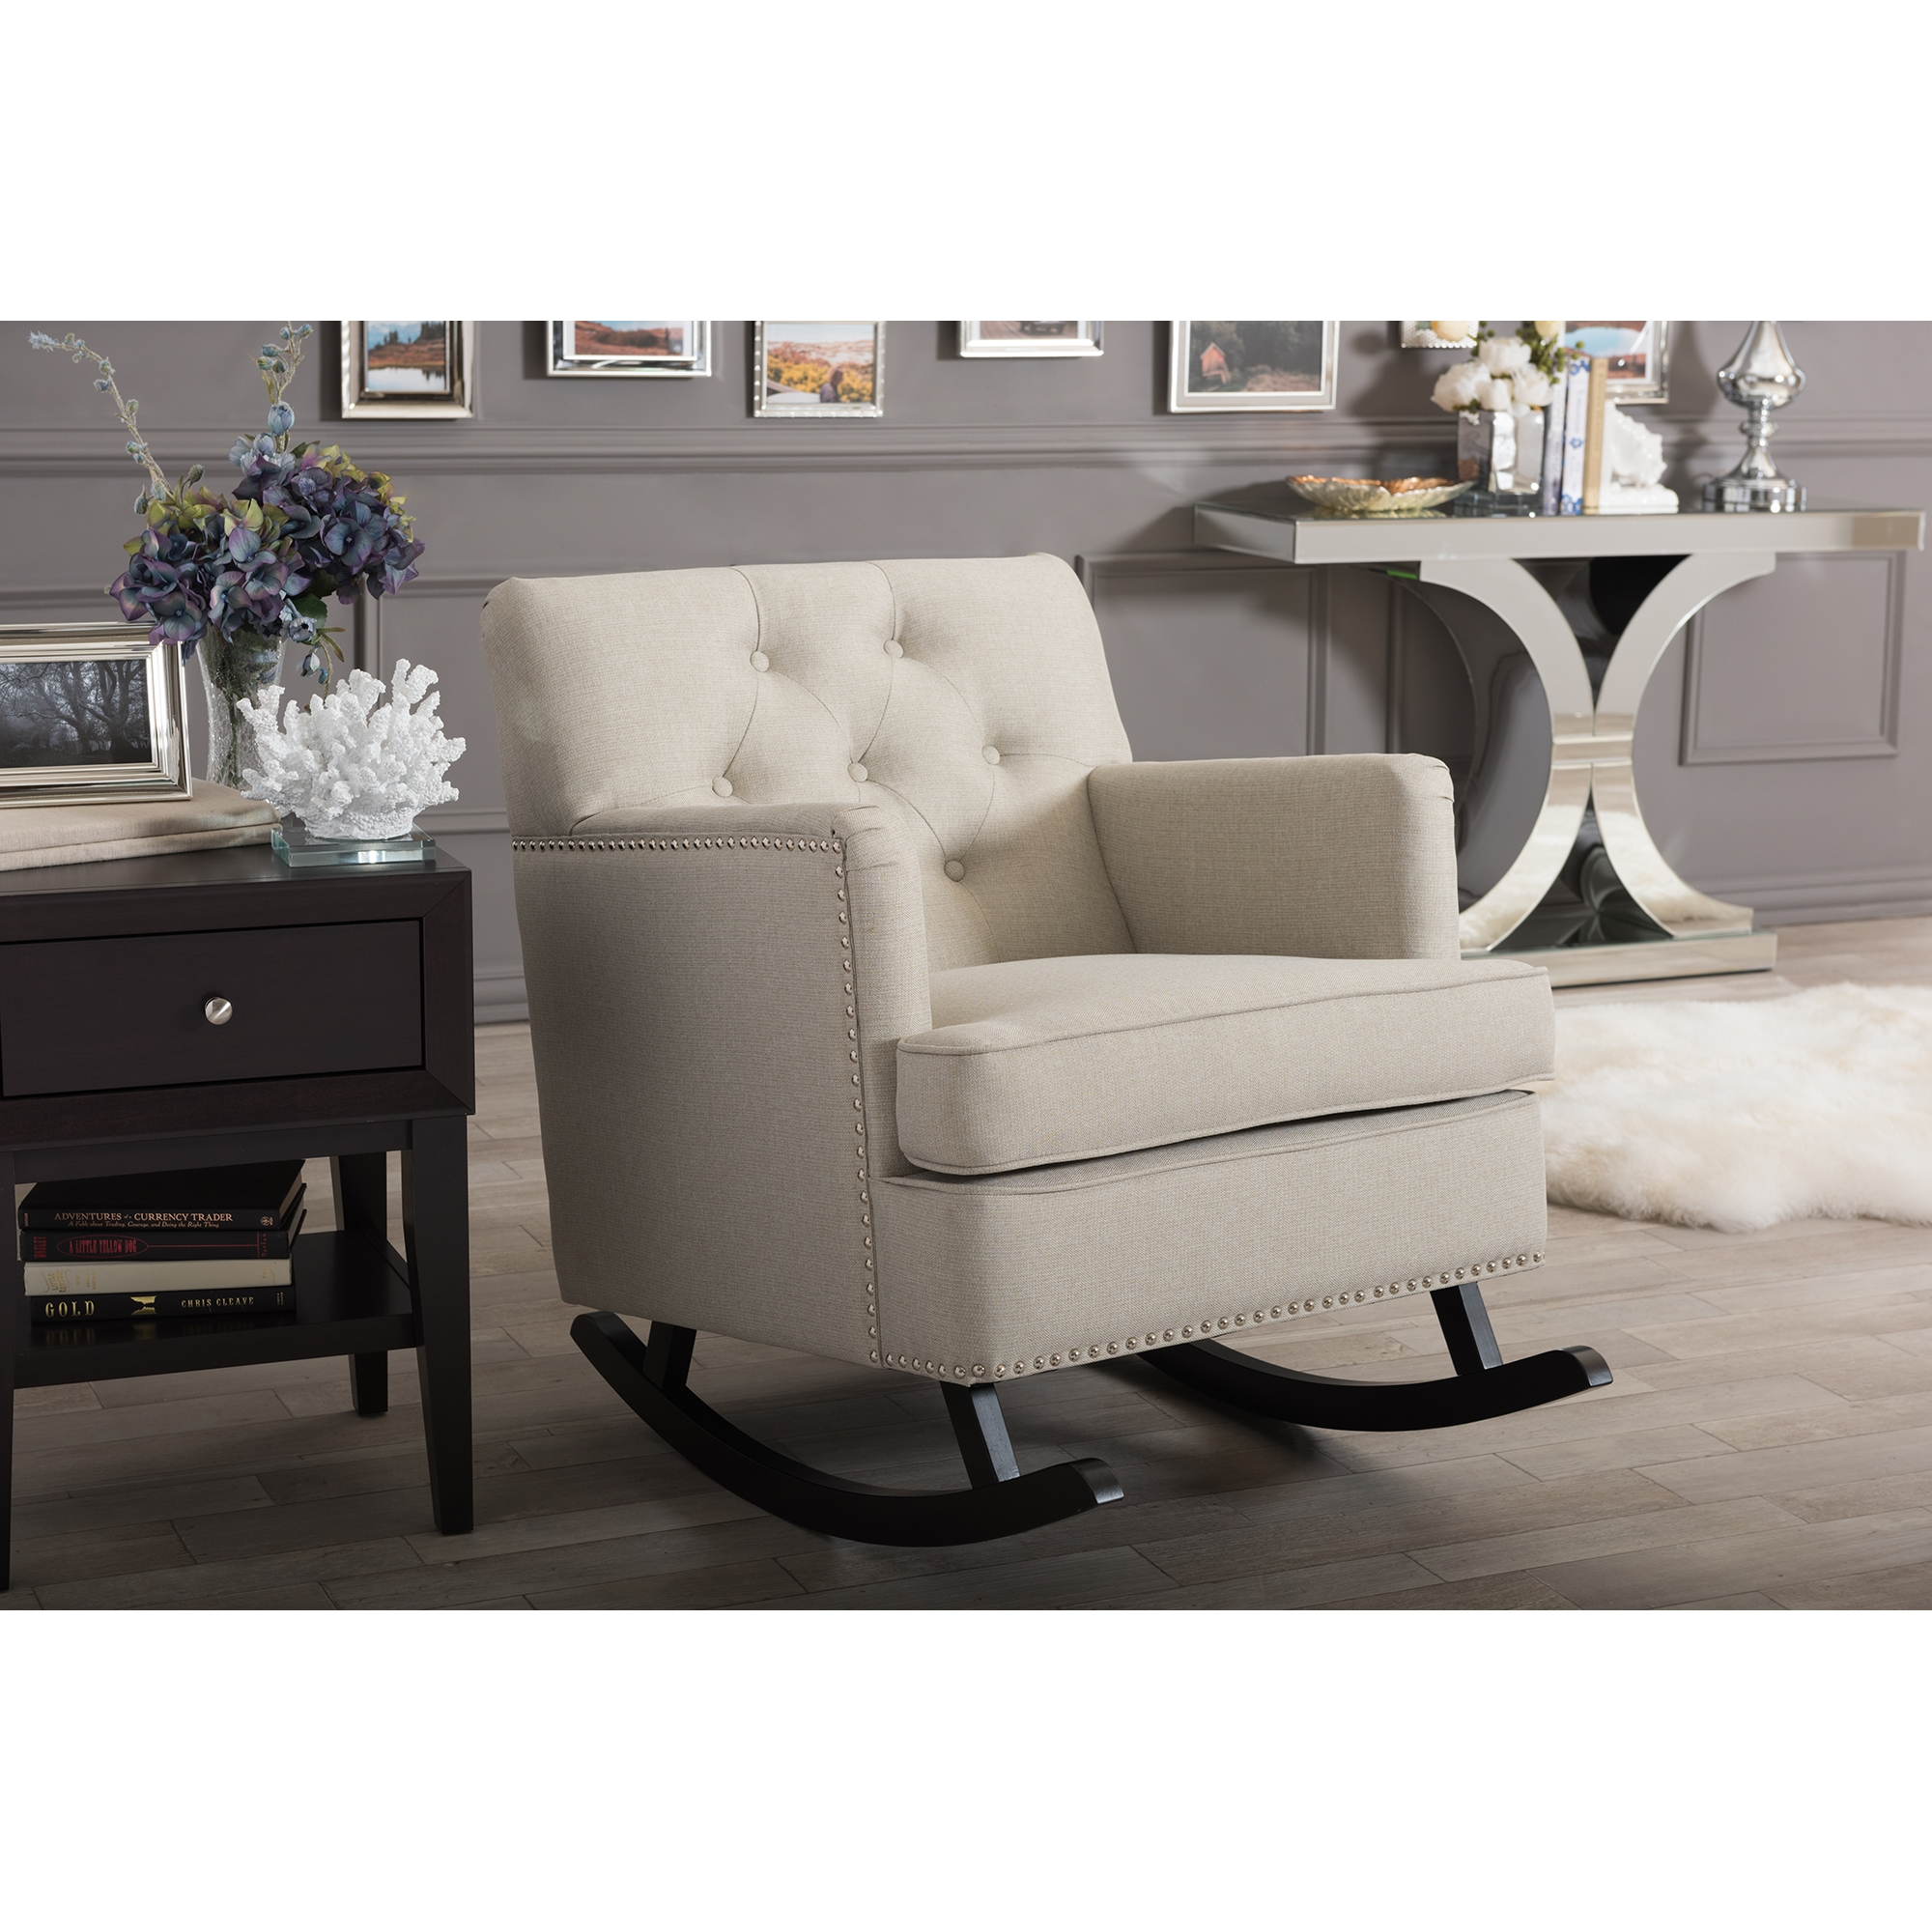 Fabric Rocking Chair Home Design Ideas and